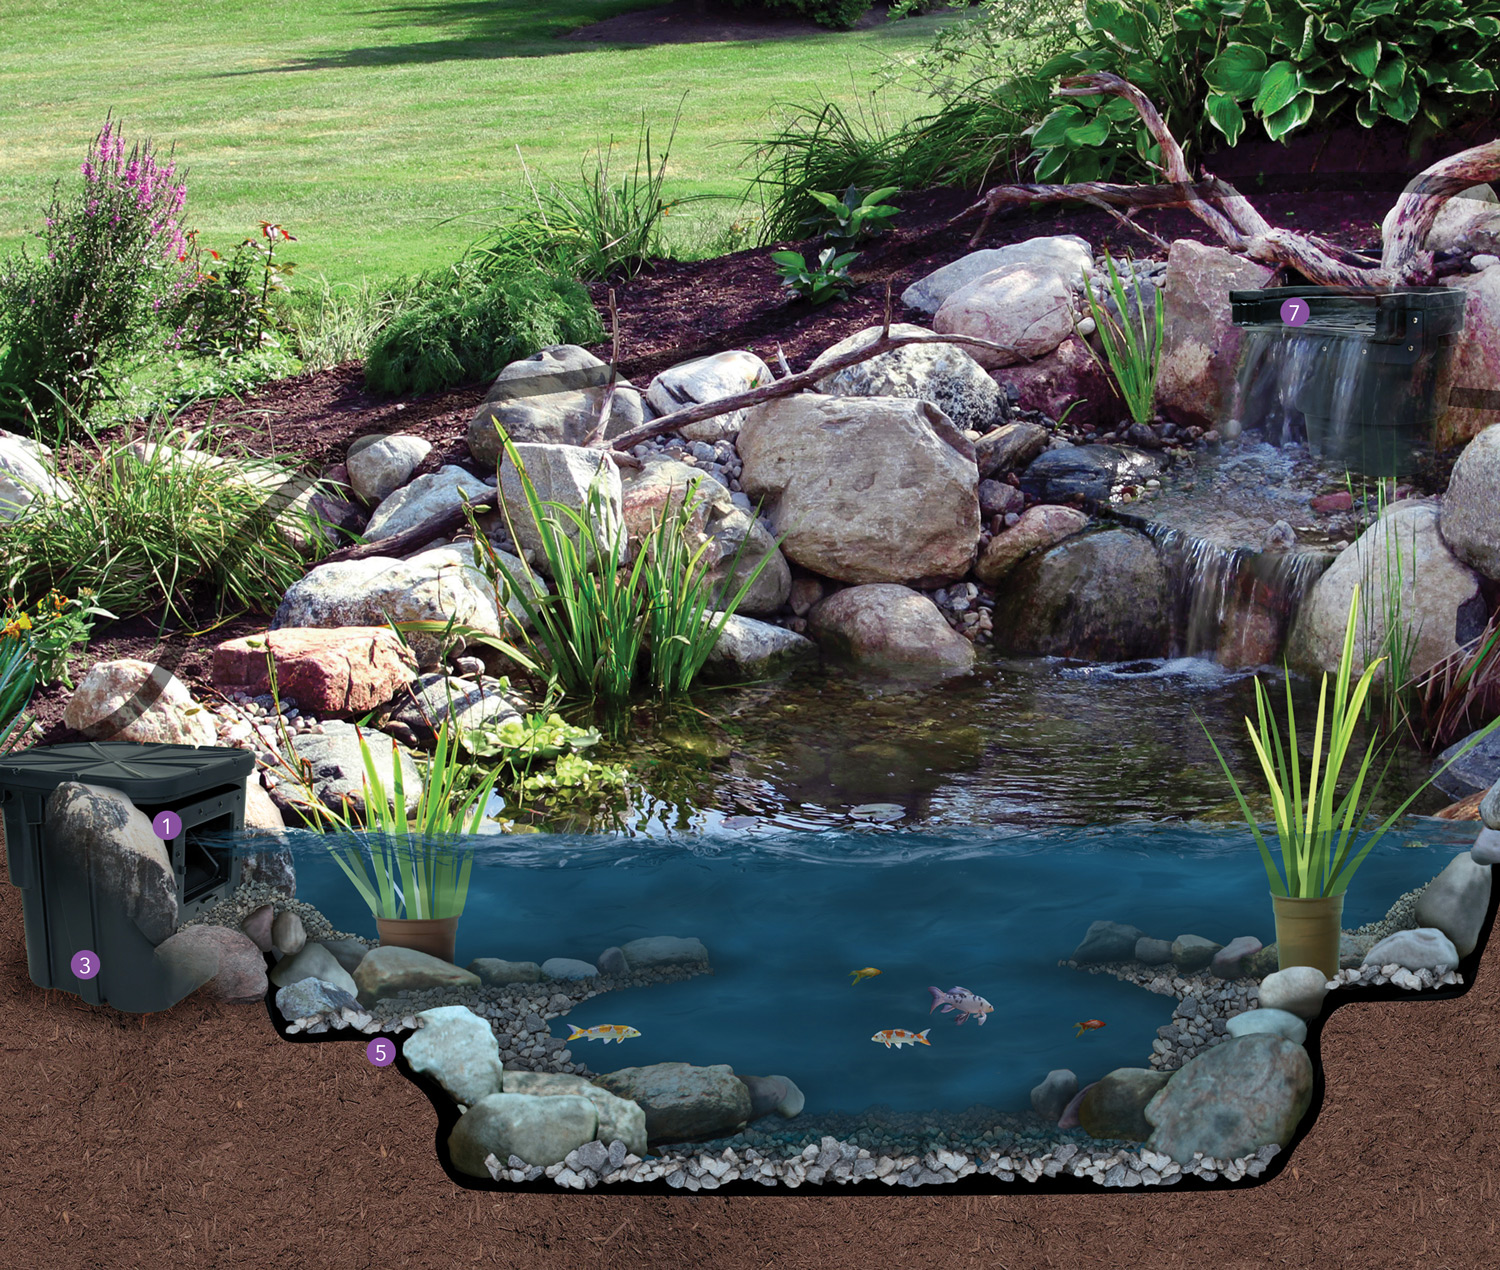 Water garden smartrain for Small pond kits